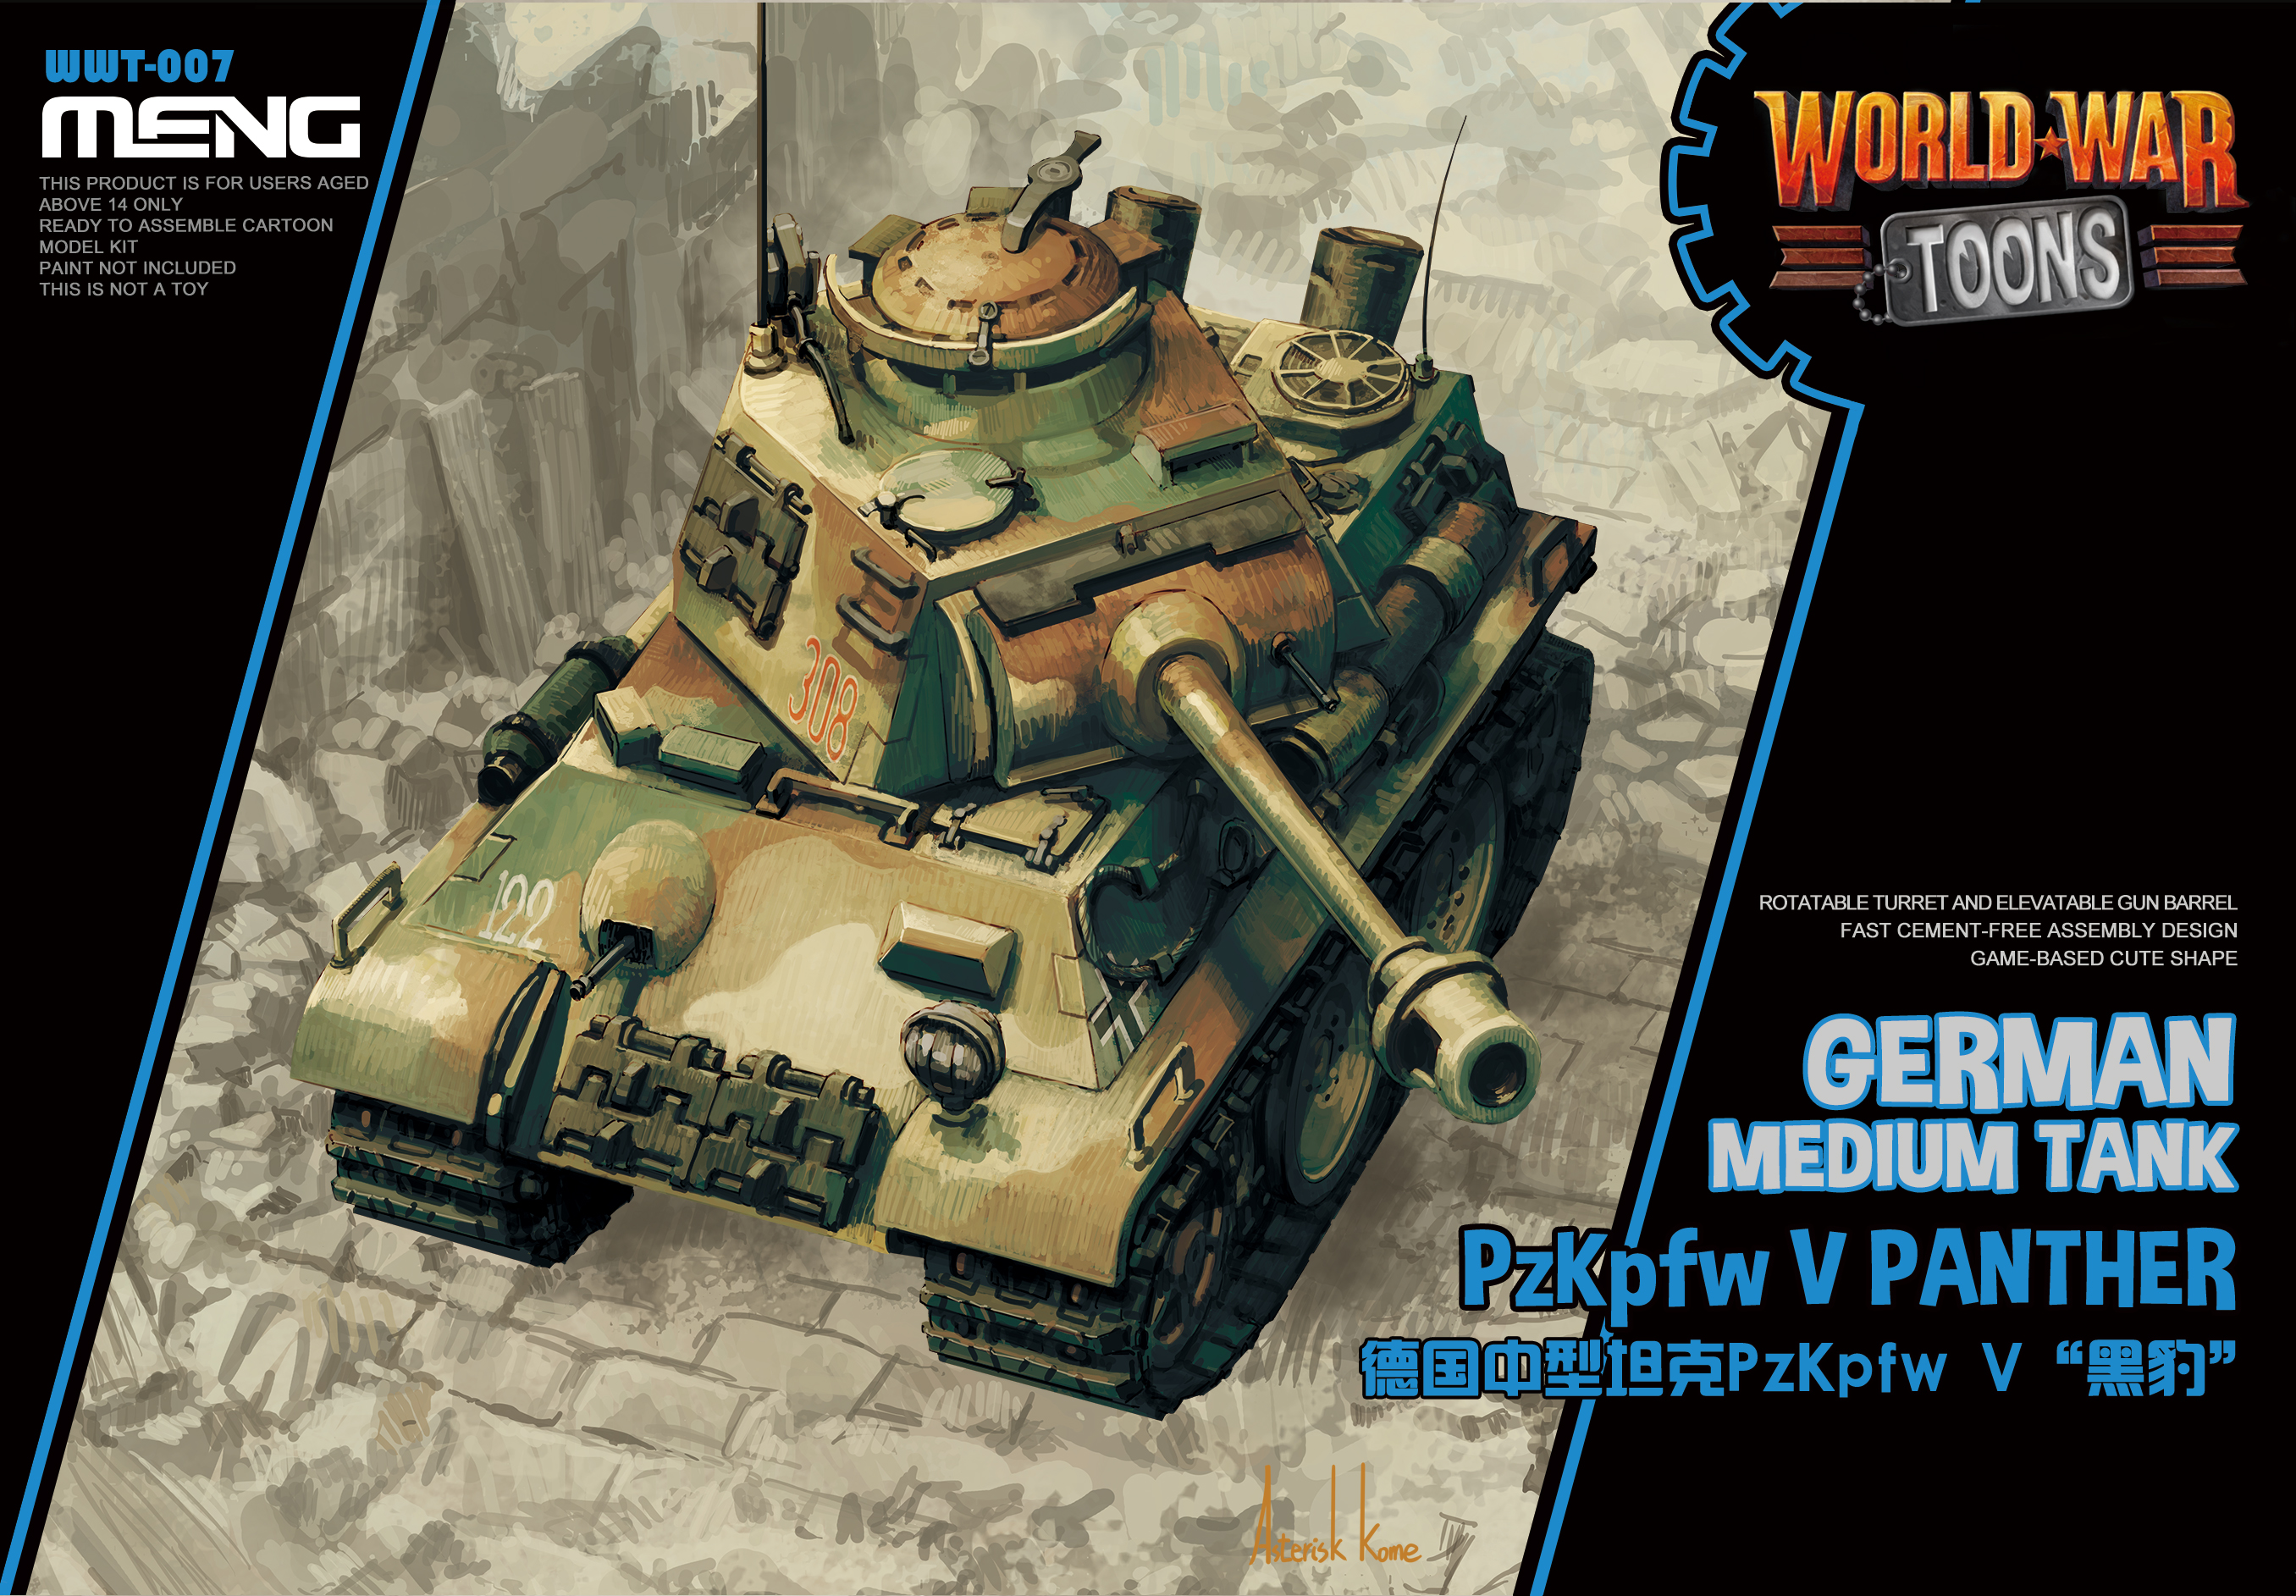 Meng German Medium Tank PzKpfw V Panther (CARTOON MODEL)